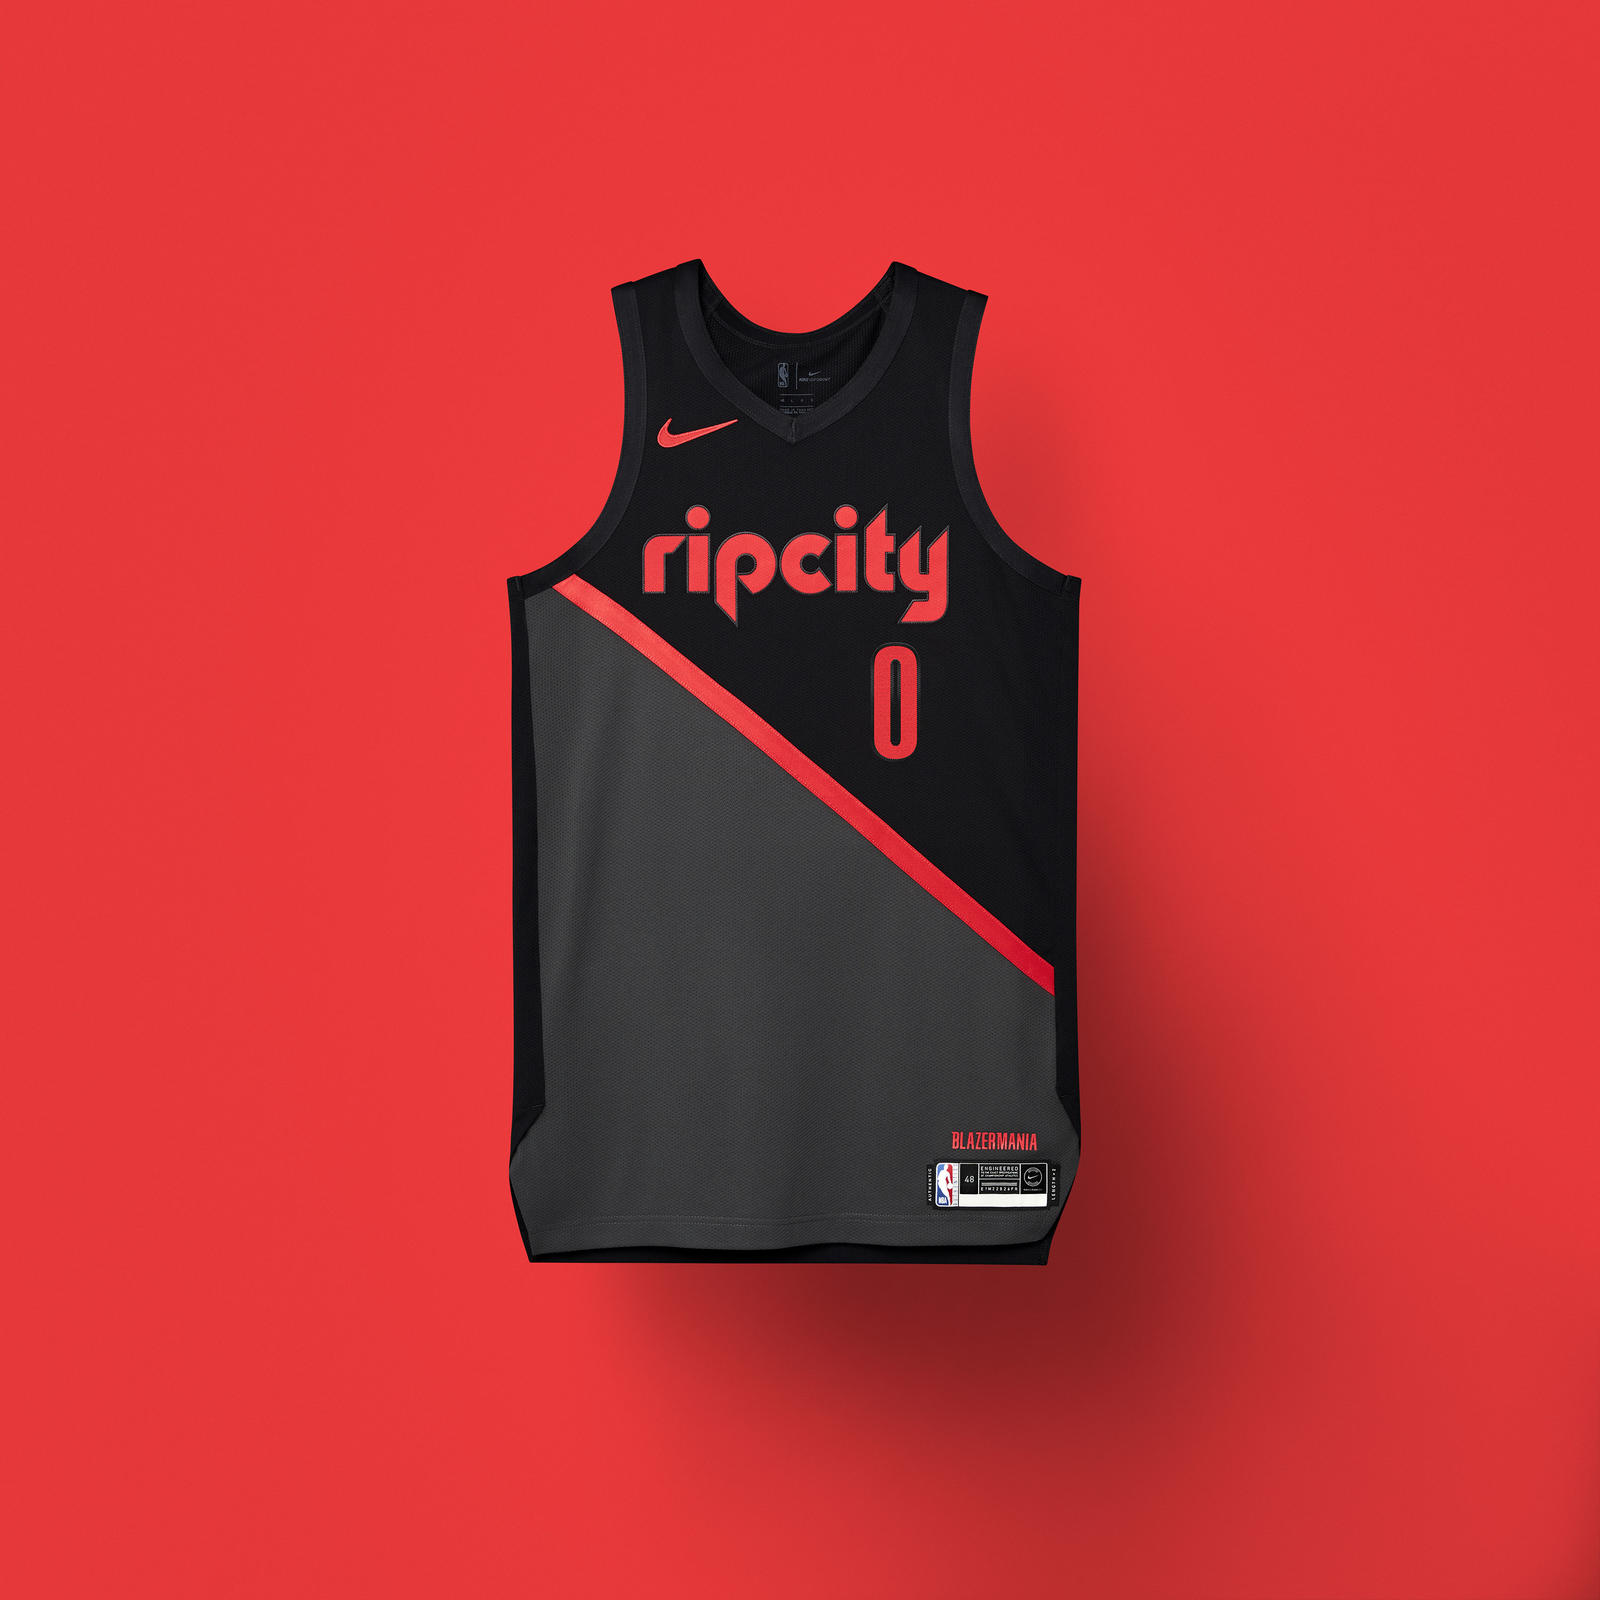 Ho18 nba city edition portland jersey 0191 re square 1600